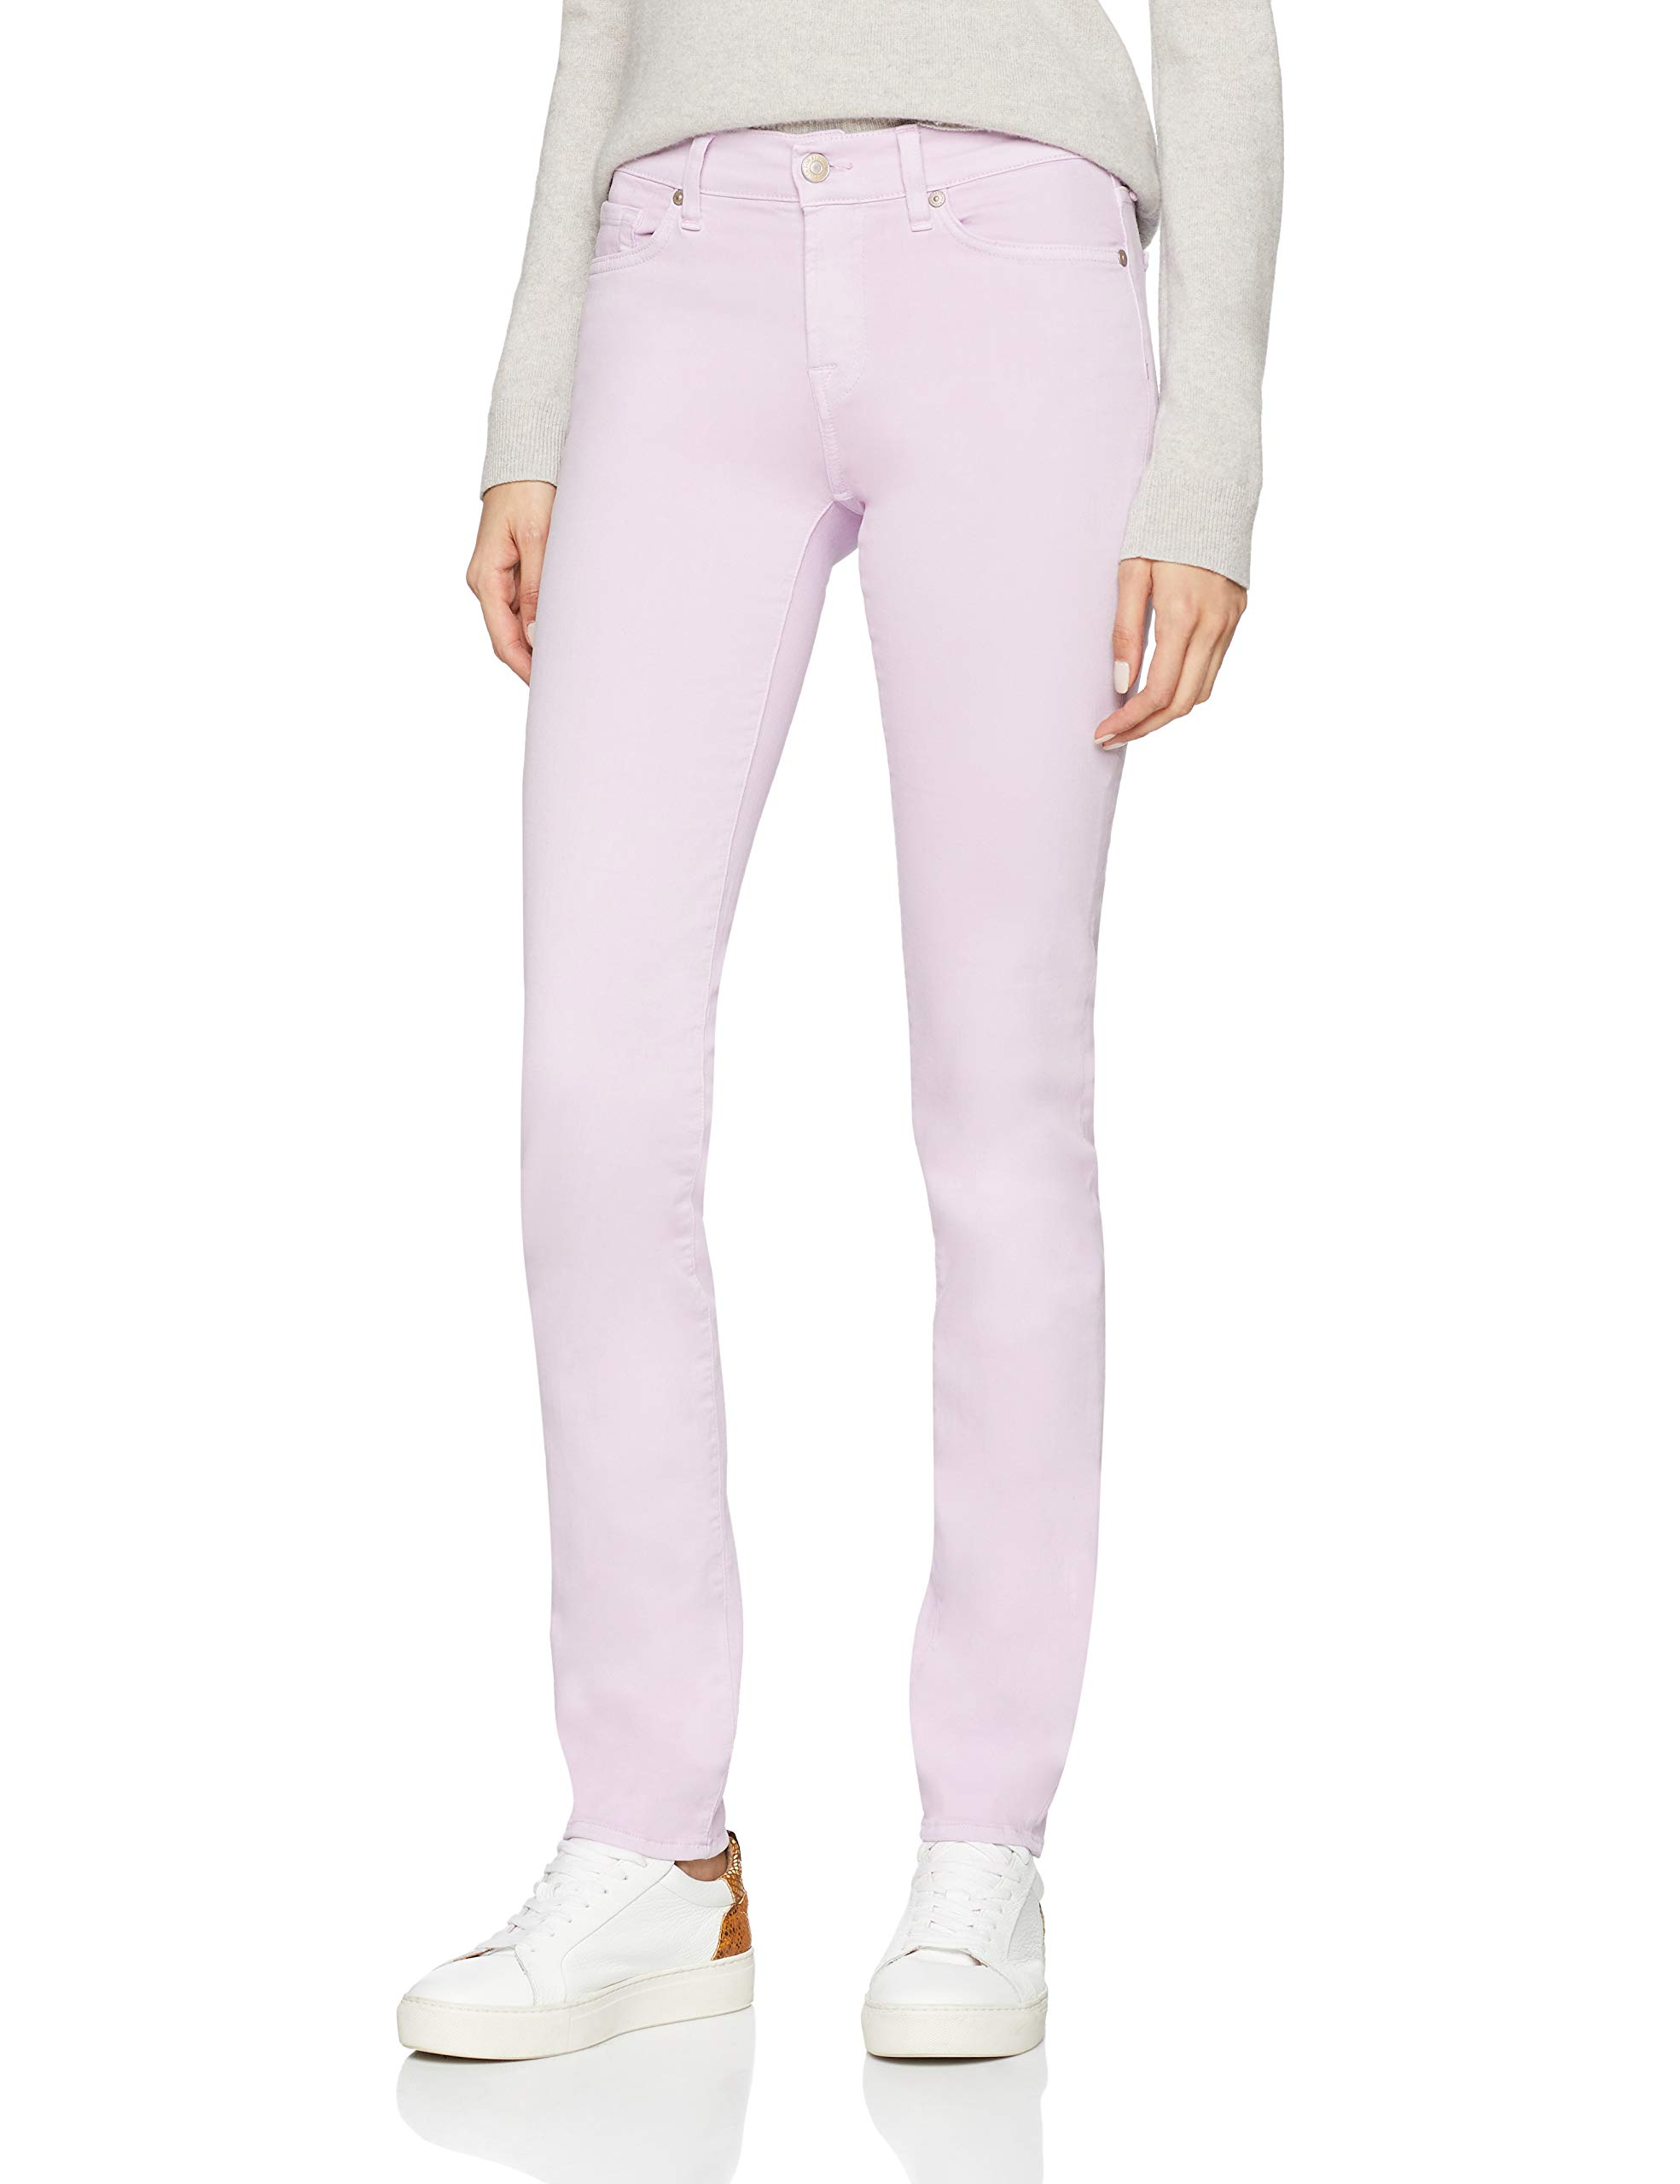 Sagl For Rise All Mankind International JeanRosecolored Fabricant31Femme Roxanne l33taille Mid Slim 0zyW31 Seven Illusion wO8nkX0ZNP